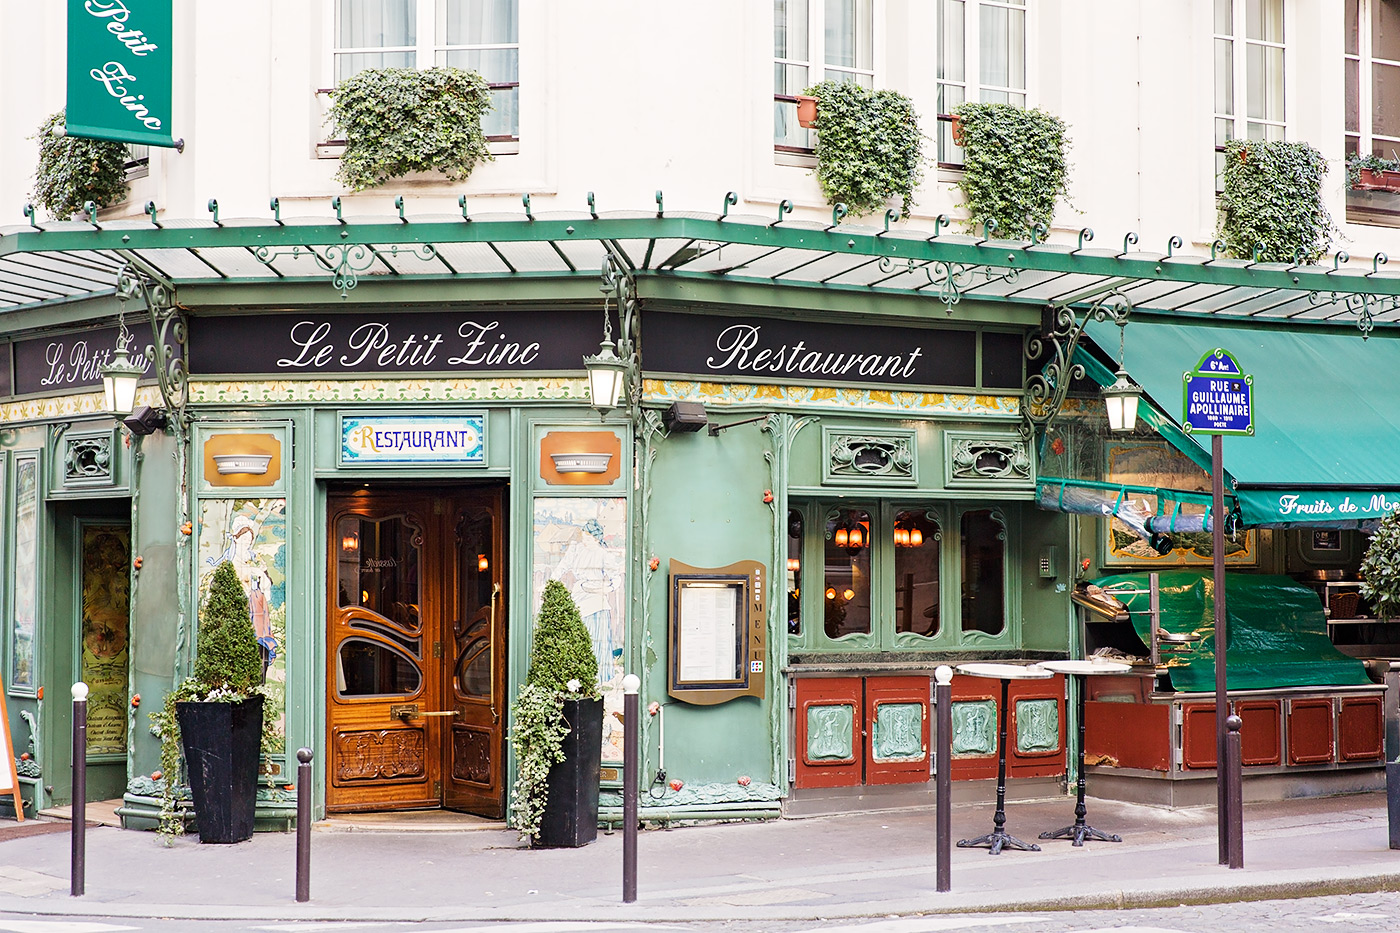 Restaurant Le Saint Germain